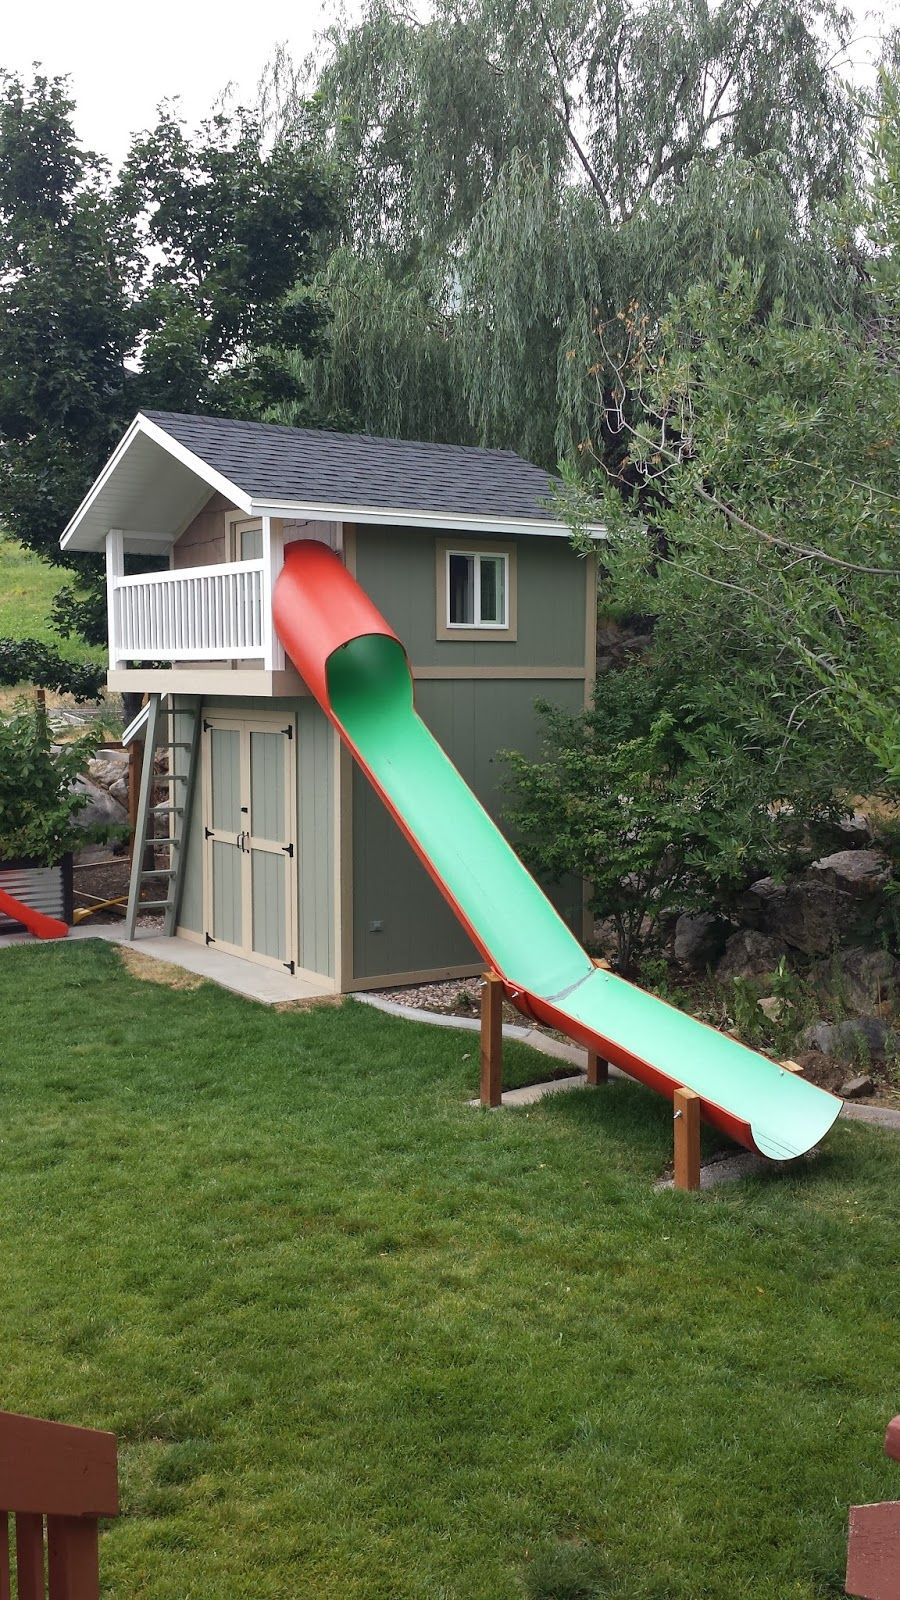 shed playhouse combo americafirstcu sharing is caring blog in rh pinterest com